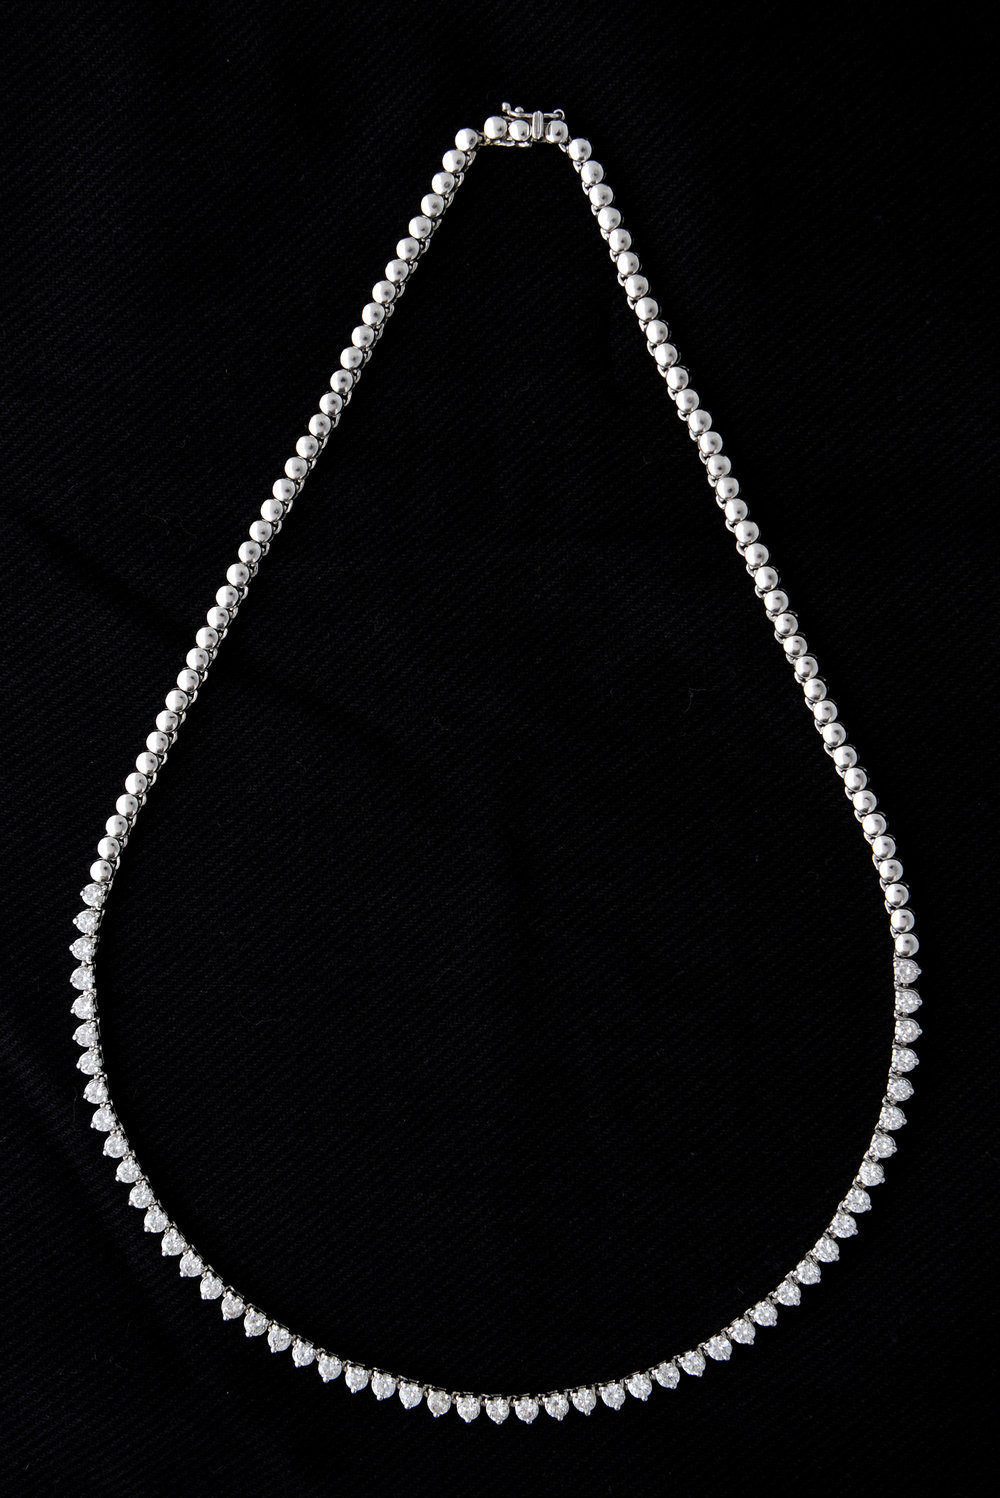 necklace03.jpg